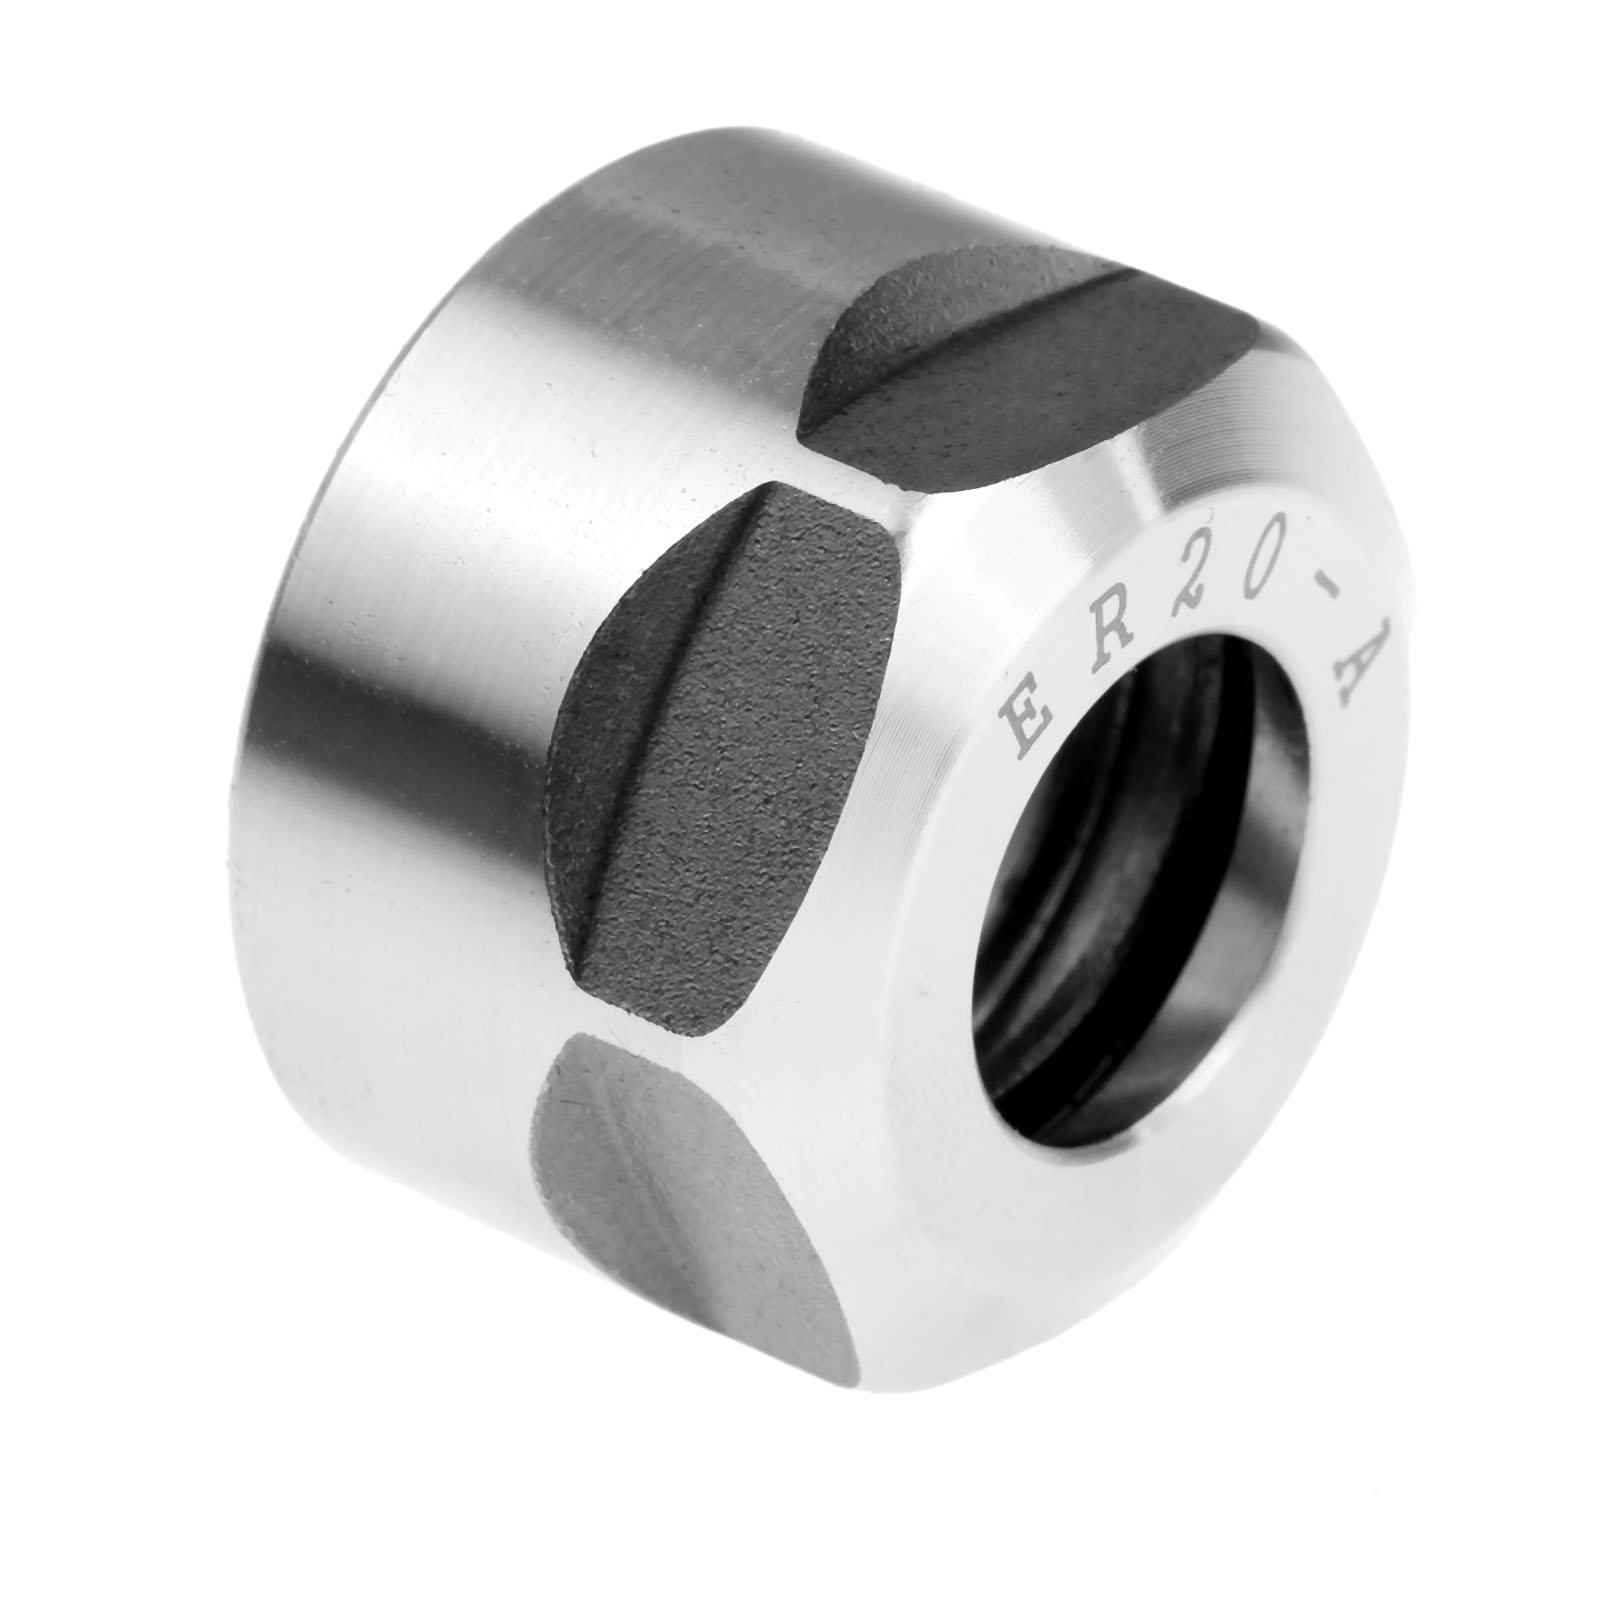 HGC ER11 M Type Collet Clamping Nut for CNC Milling Chuck Holder Lathe